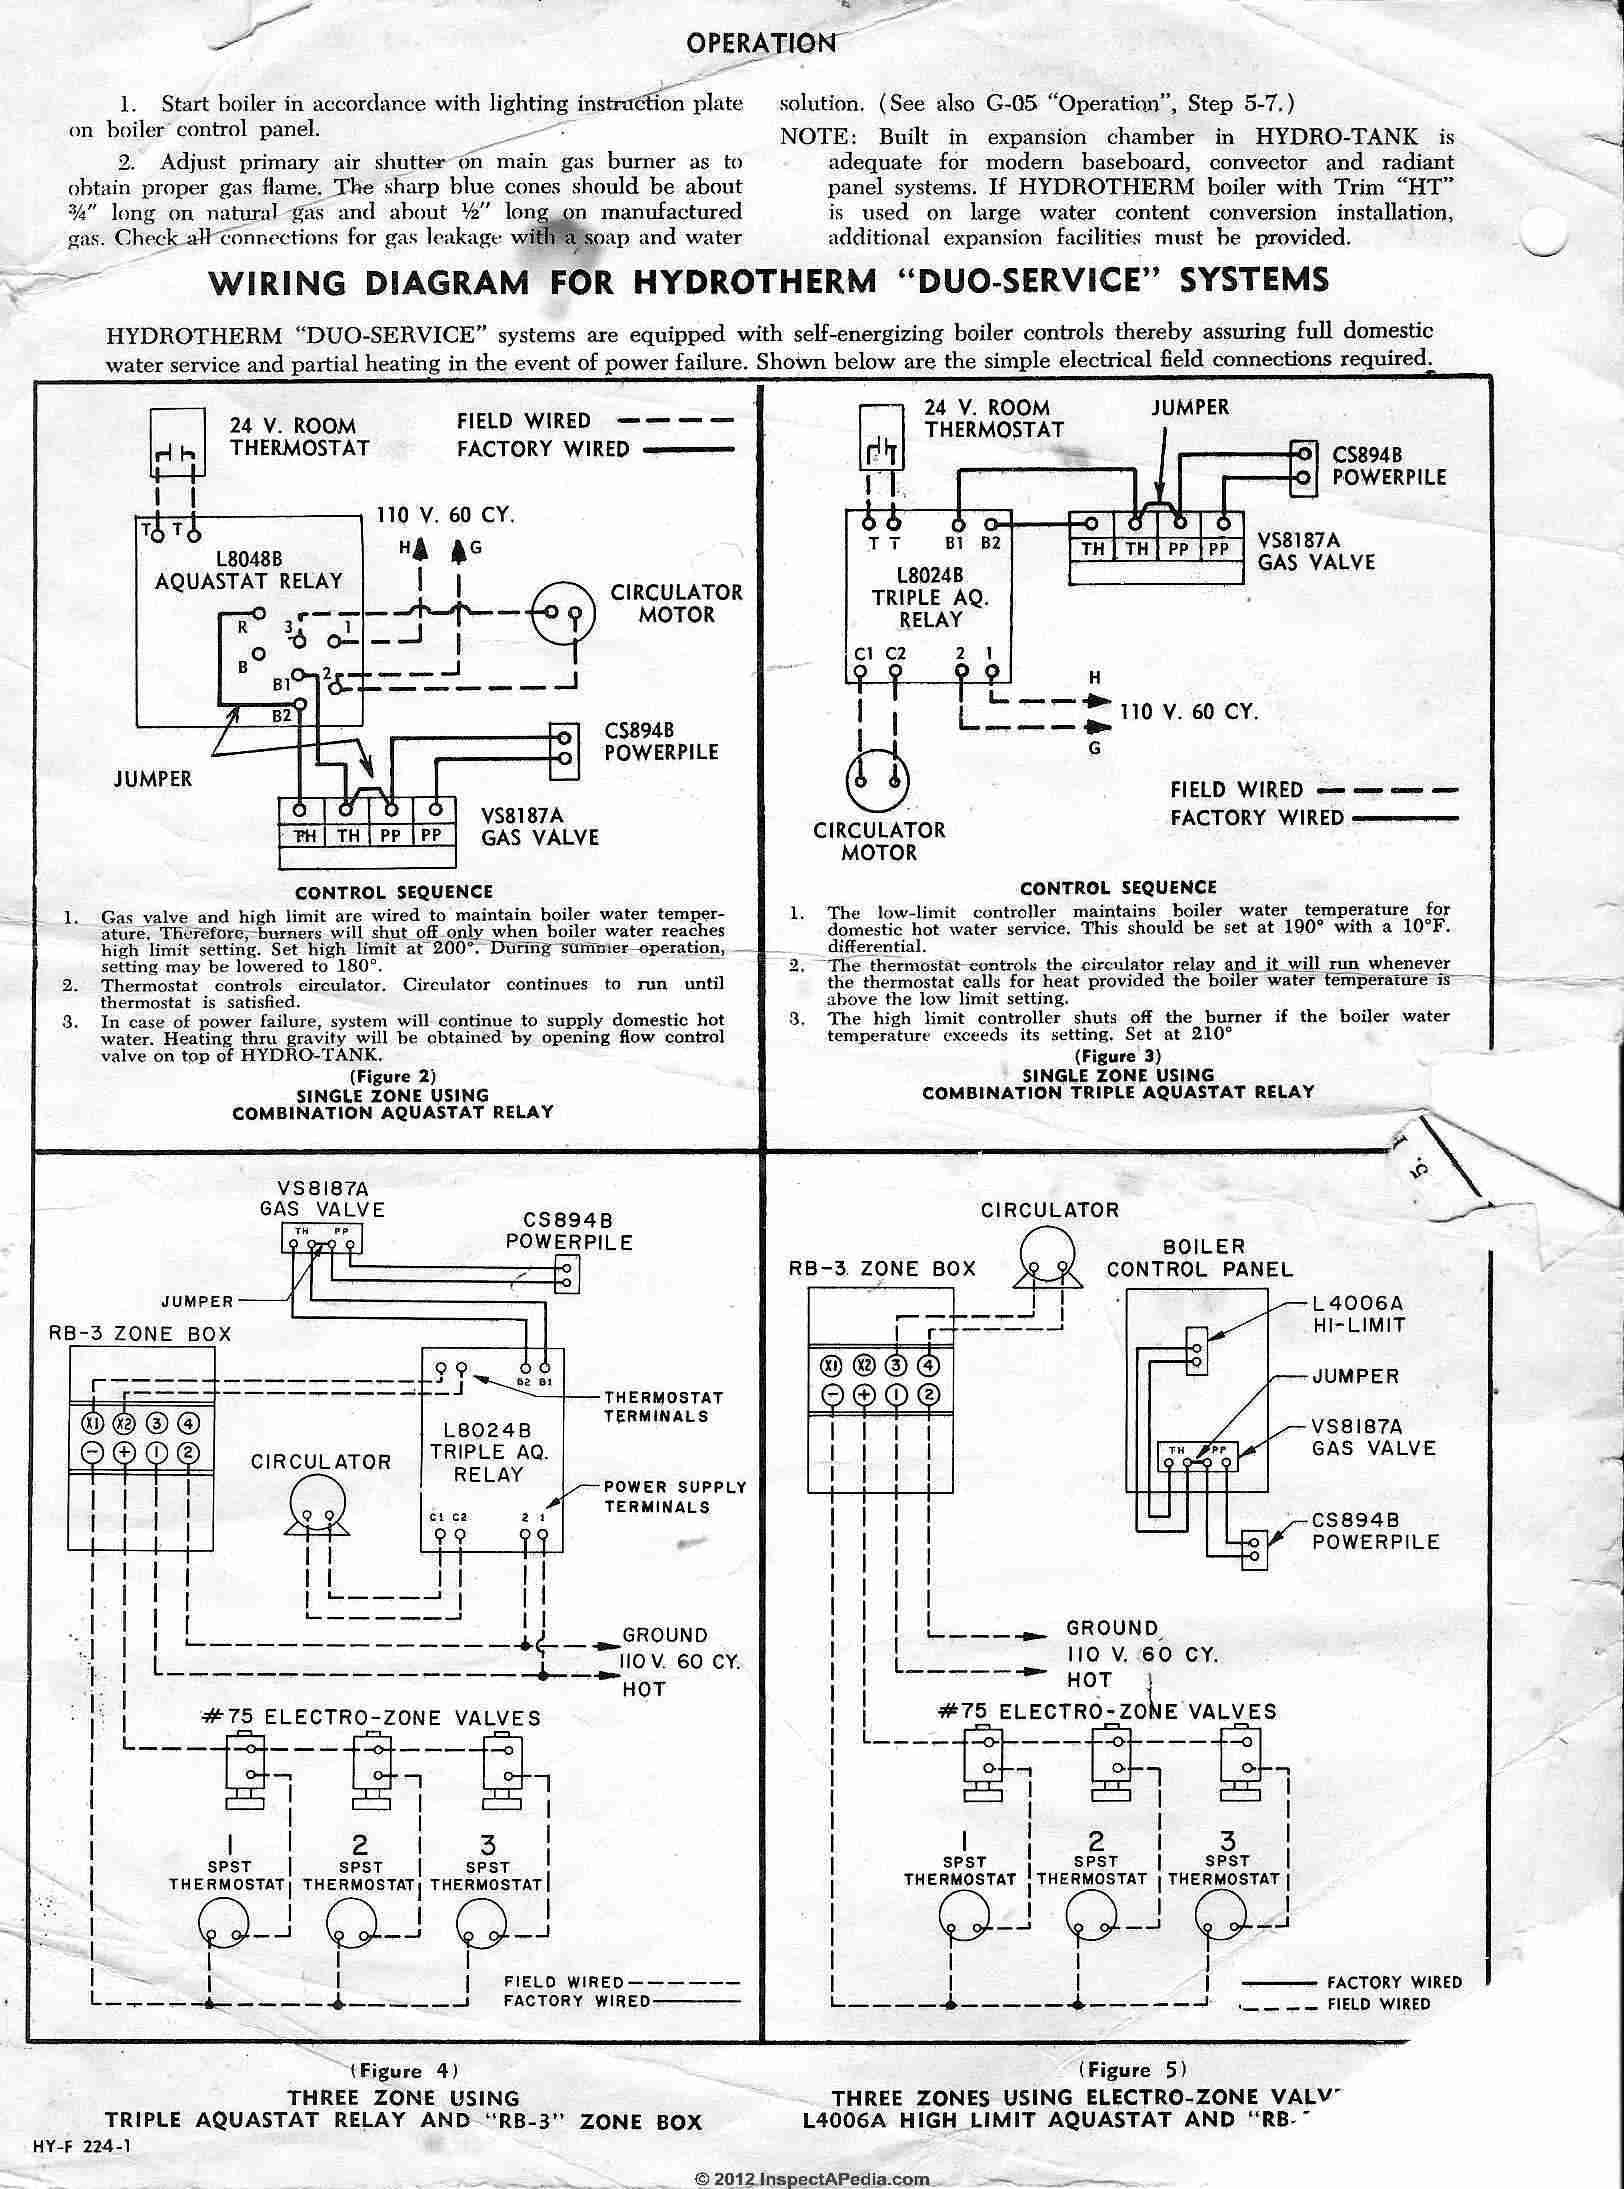 L8024B_Aquastat_0422_DJFcs heating boiler aquastat control diagnosis, troubleshooting, repair field controls power venter wiring diagram at edmiracle.co